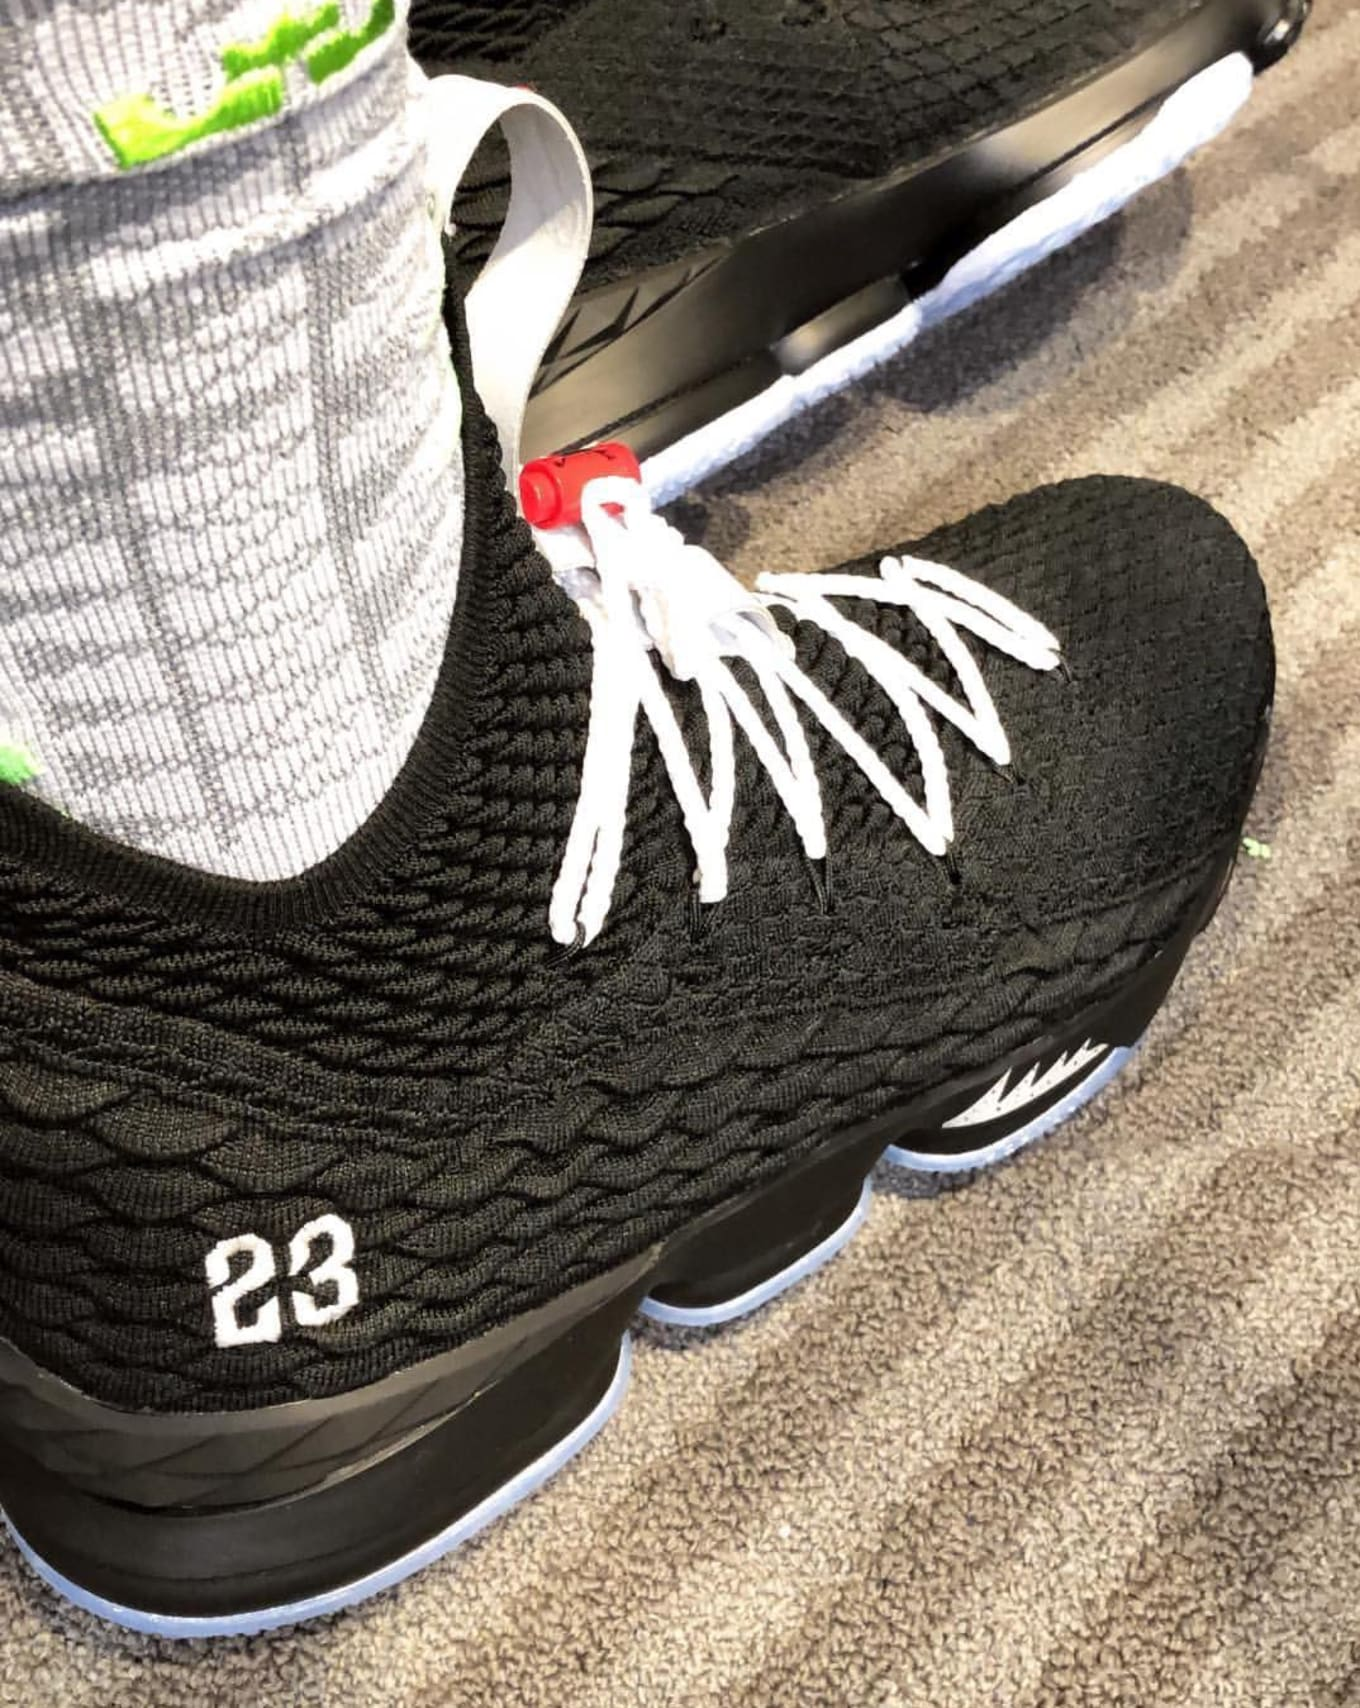 best website f0de3 0c628 LeBron James Pays Tribute to Michael Jordan with Special Sneakers